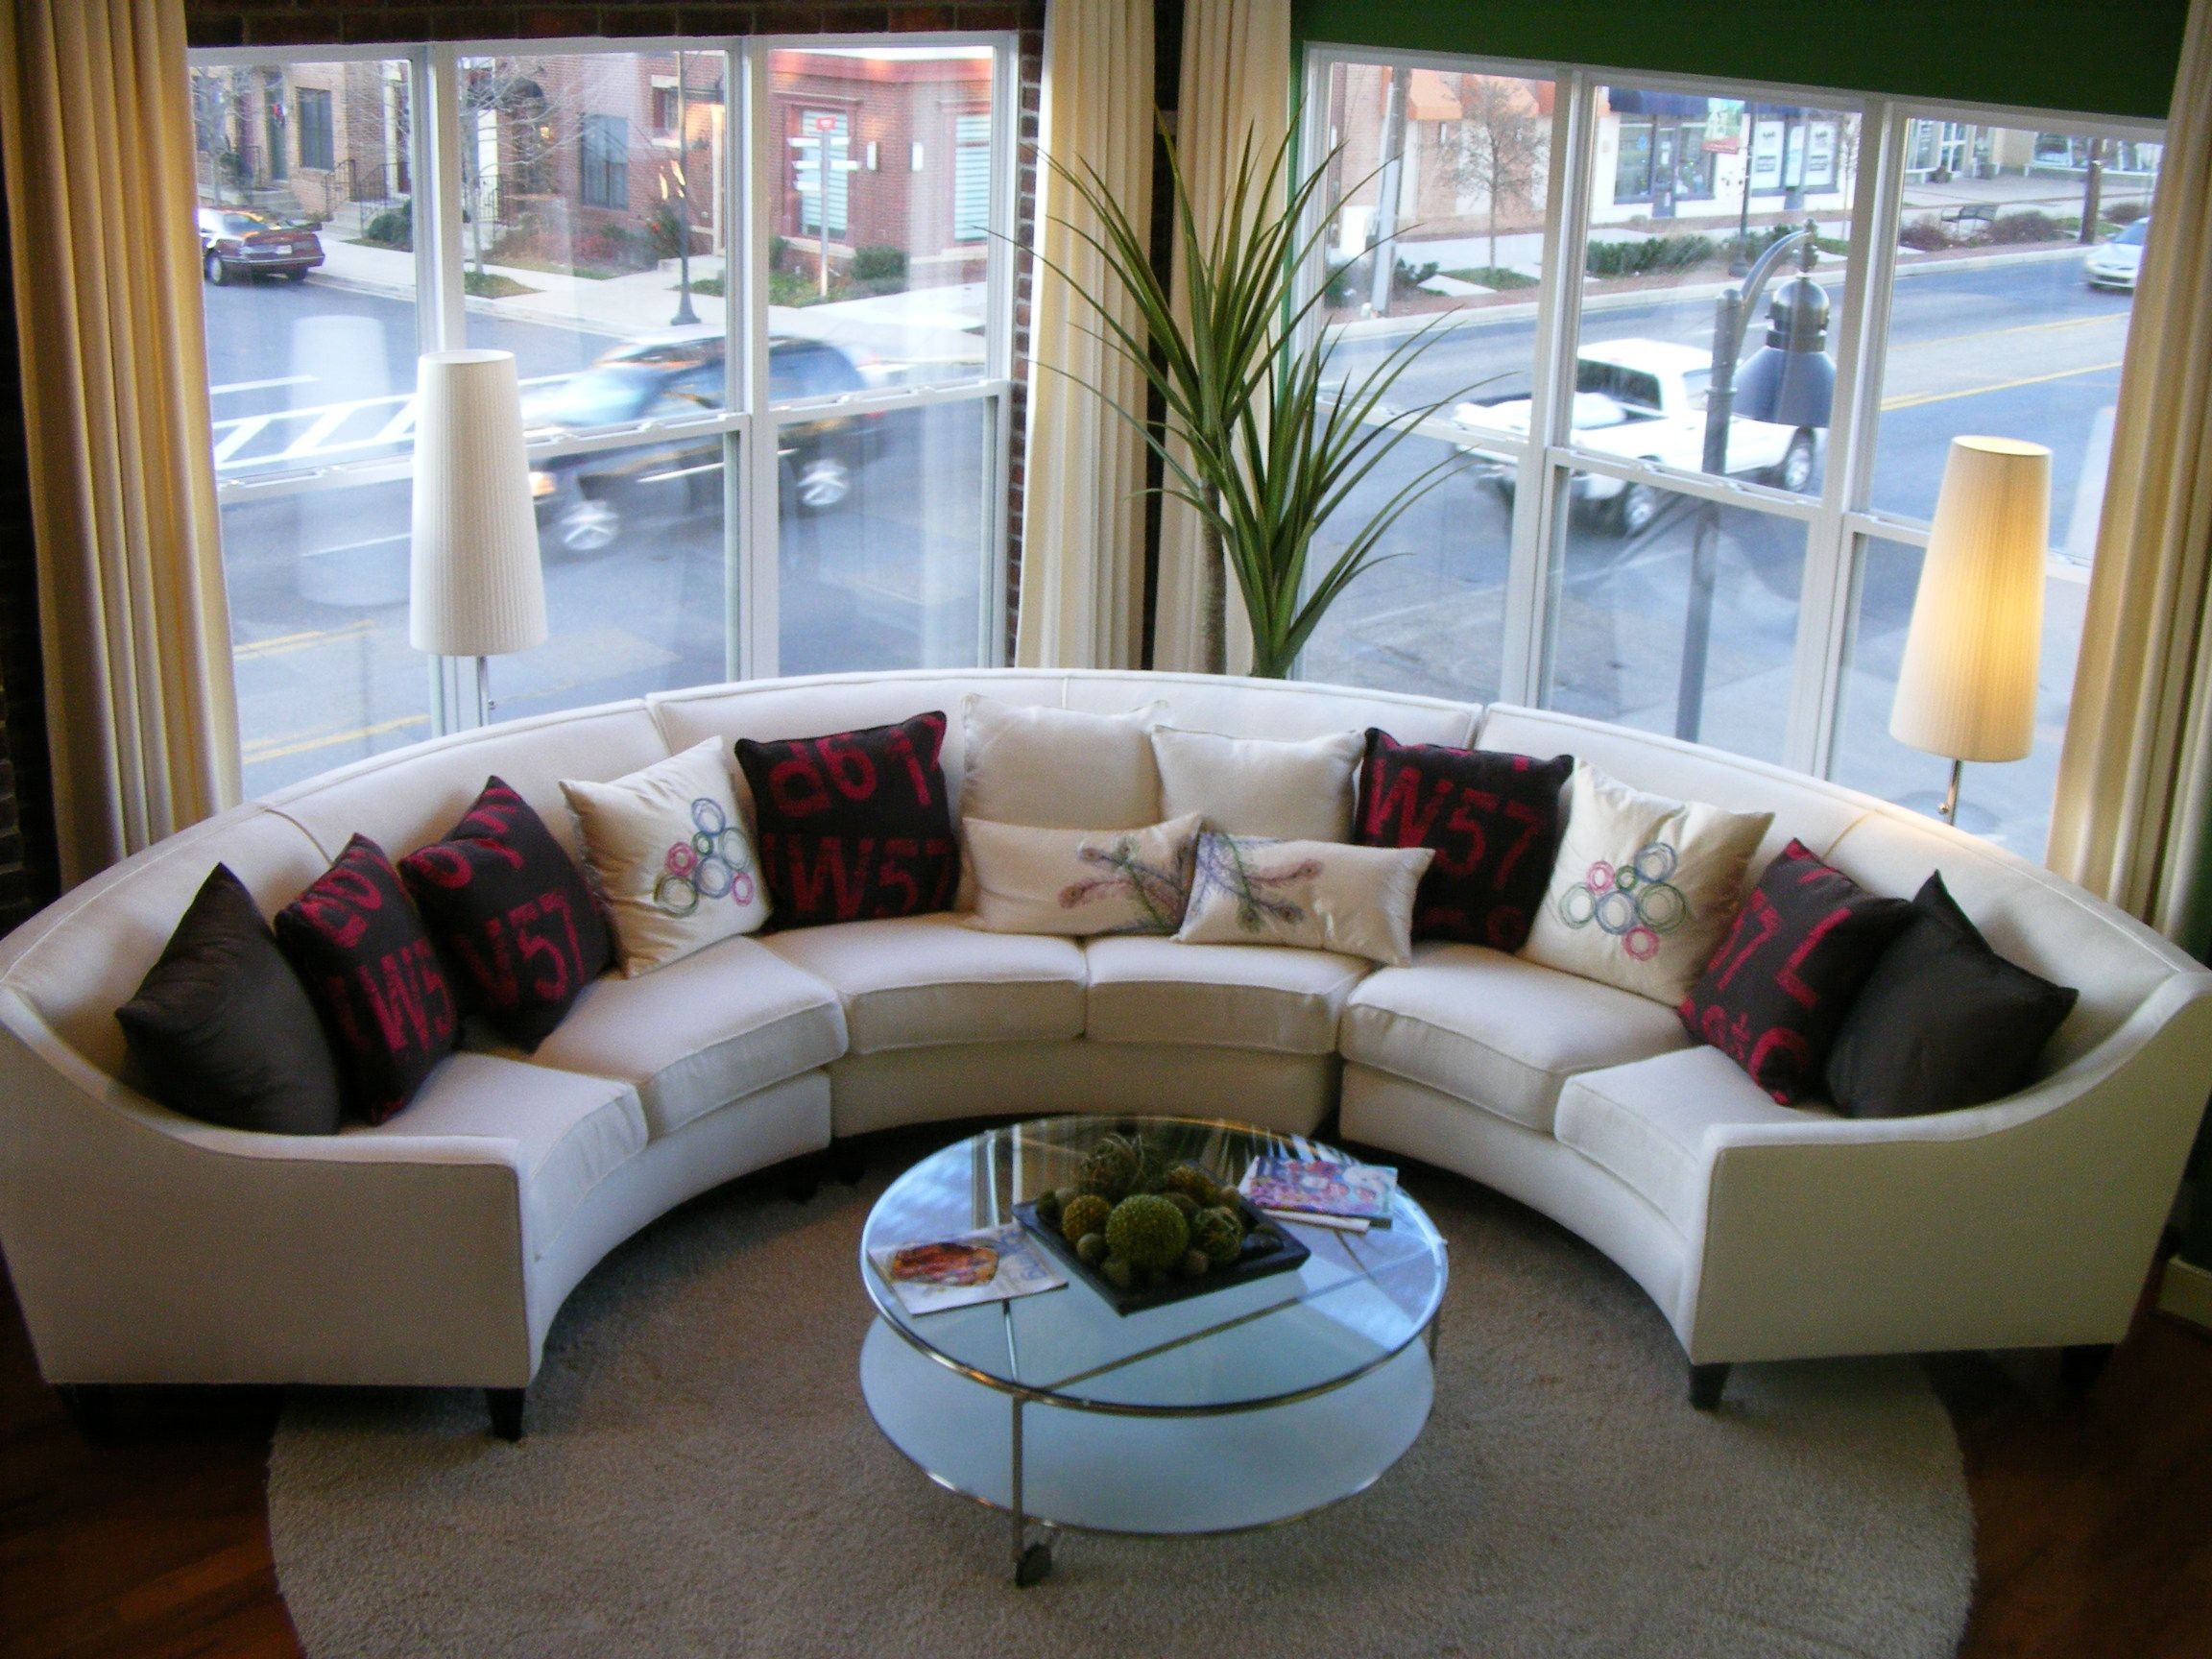 Circular Couches Living Room Furniture Cafe Rome Curved Round Sofa Sectional Sectionals